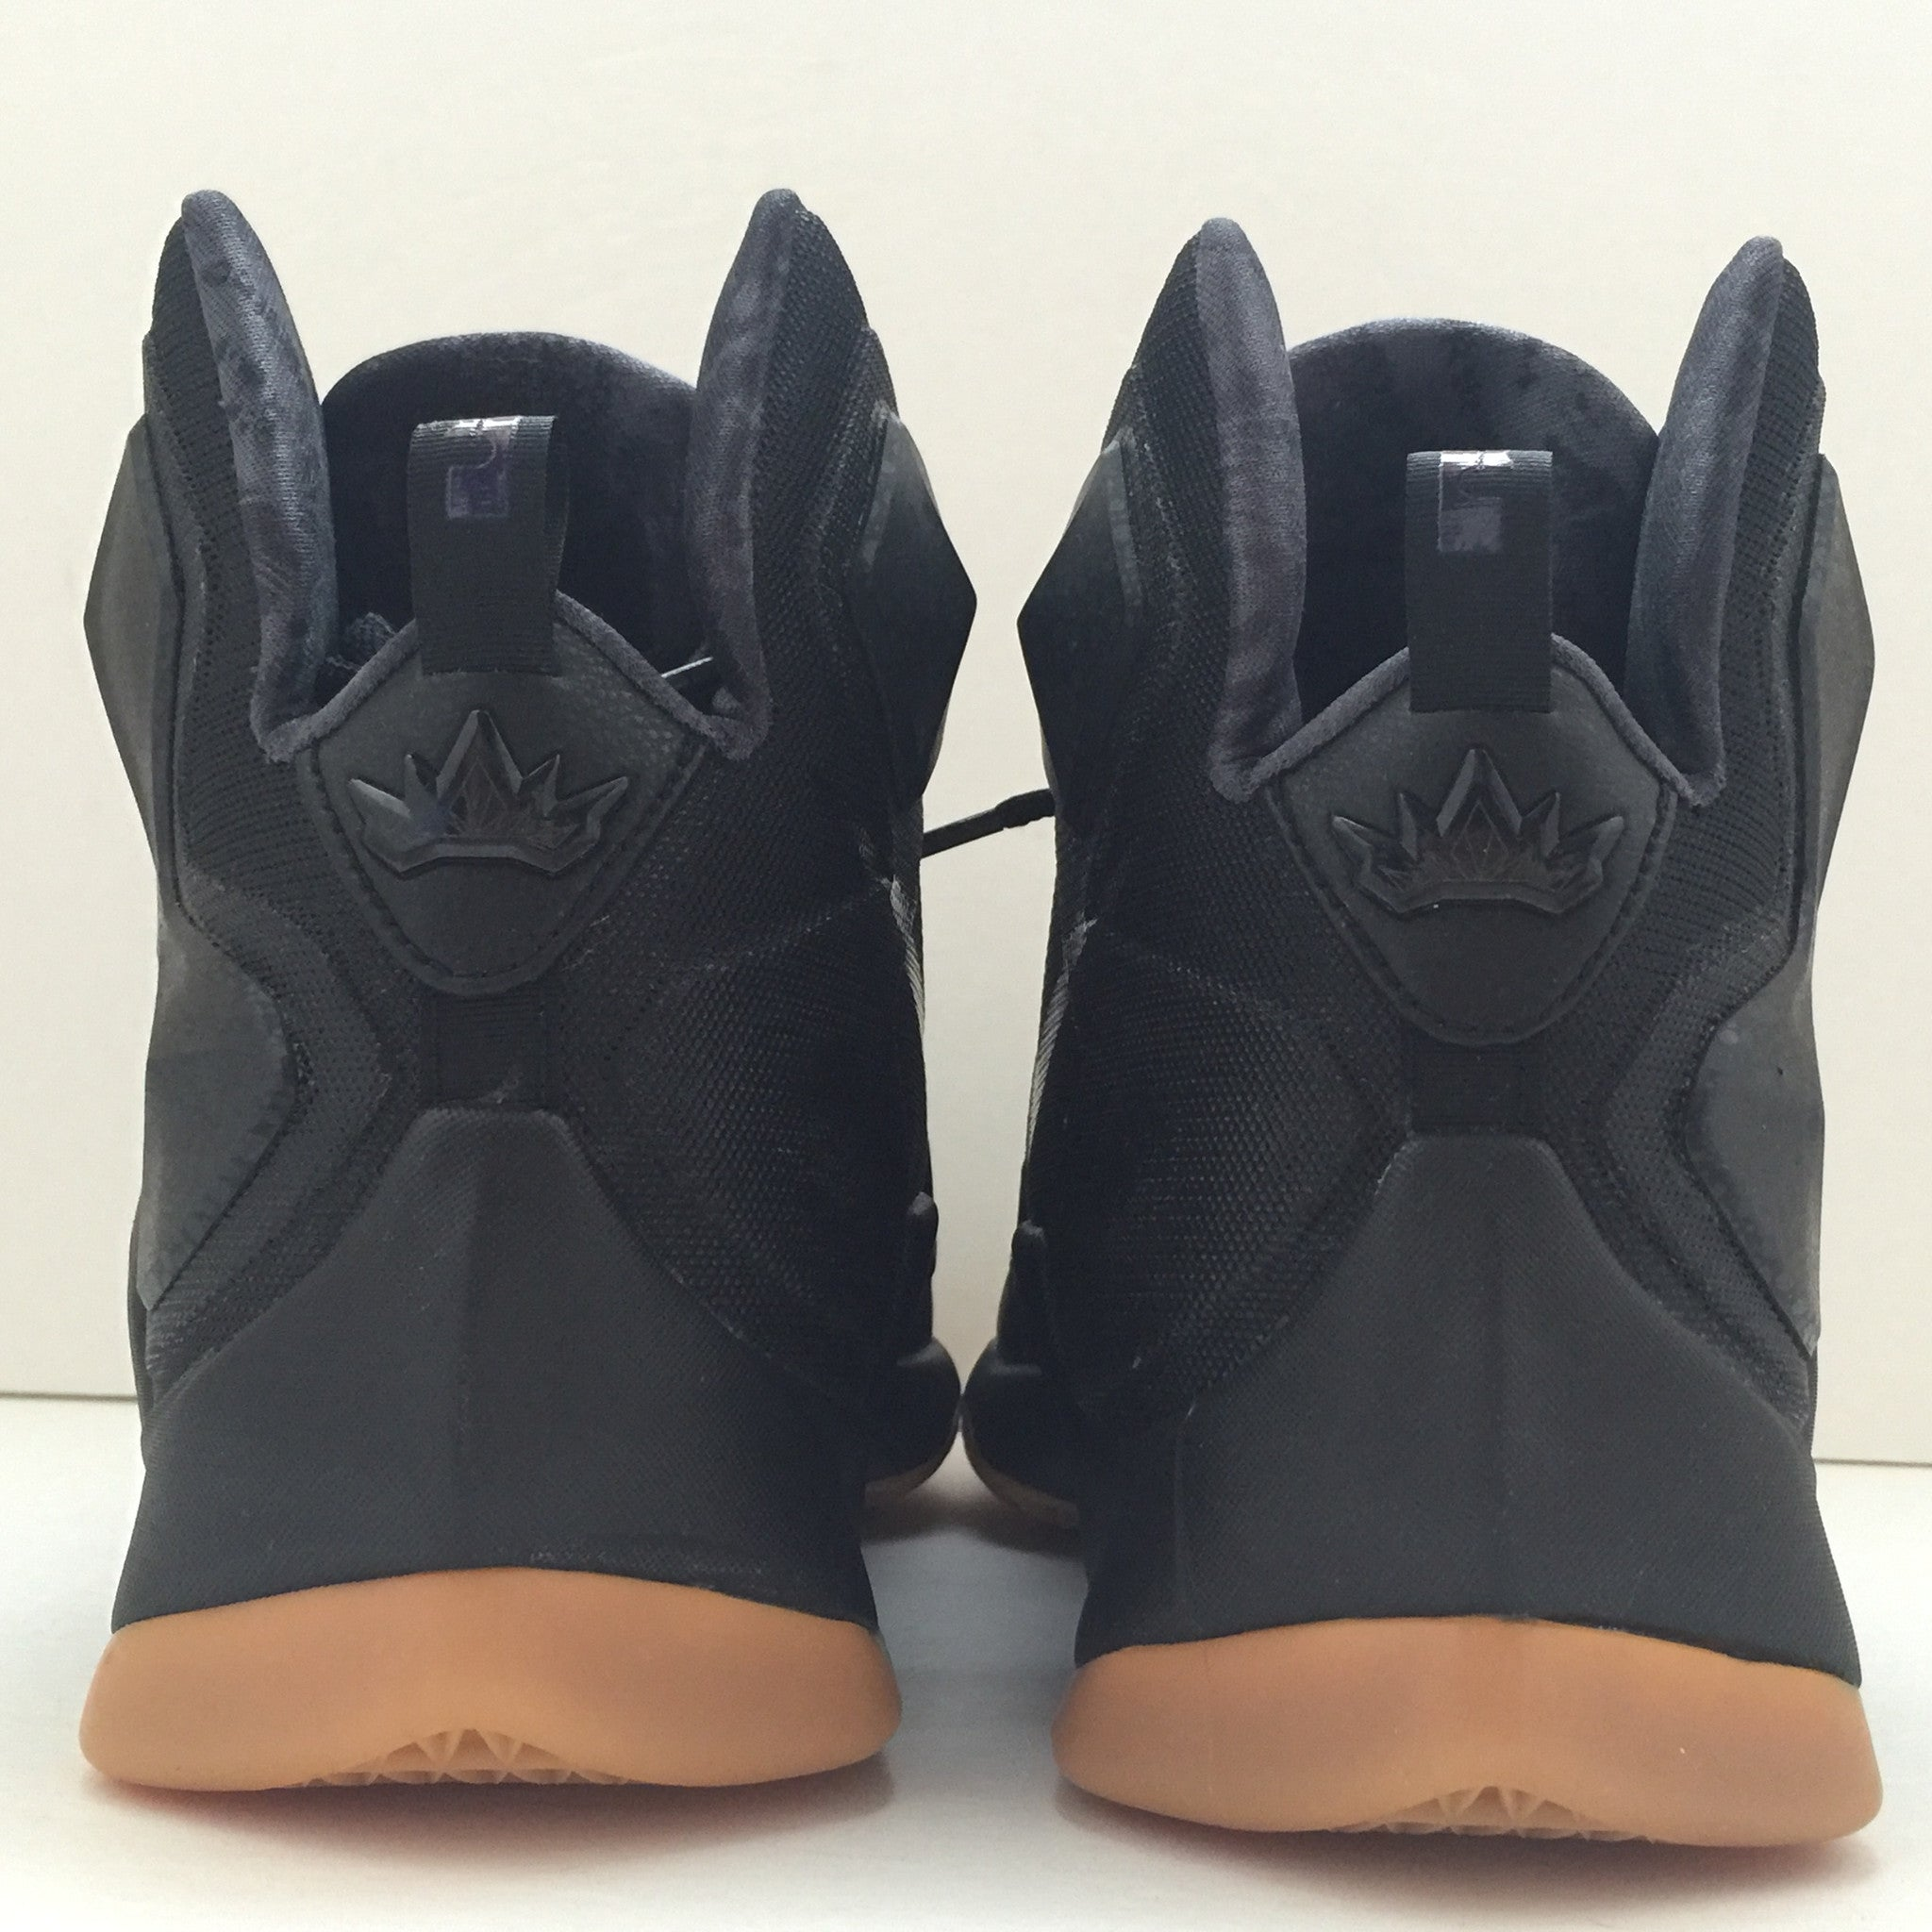 DS Nike Lebron 13 XIII Black Lion Gum Size 13.5 - DOPEFOOT  - 5